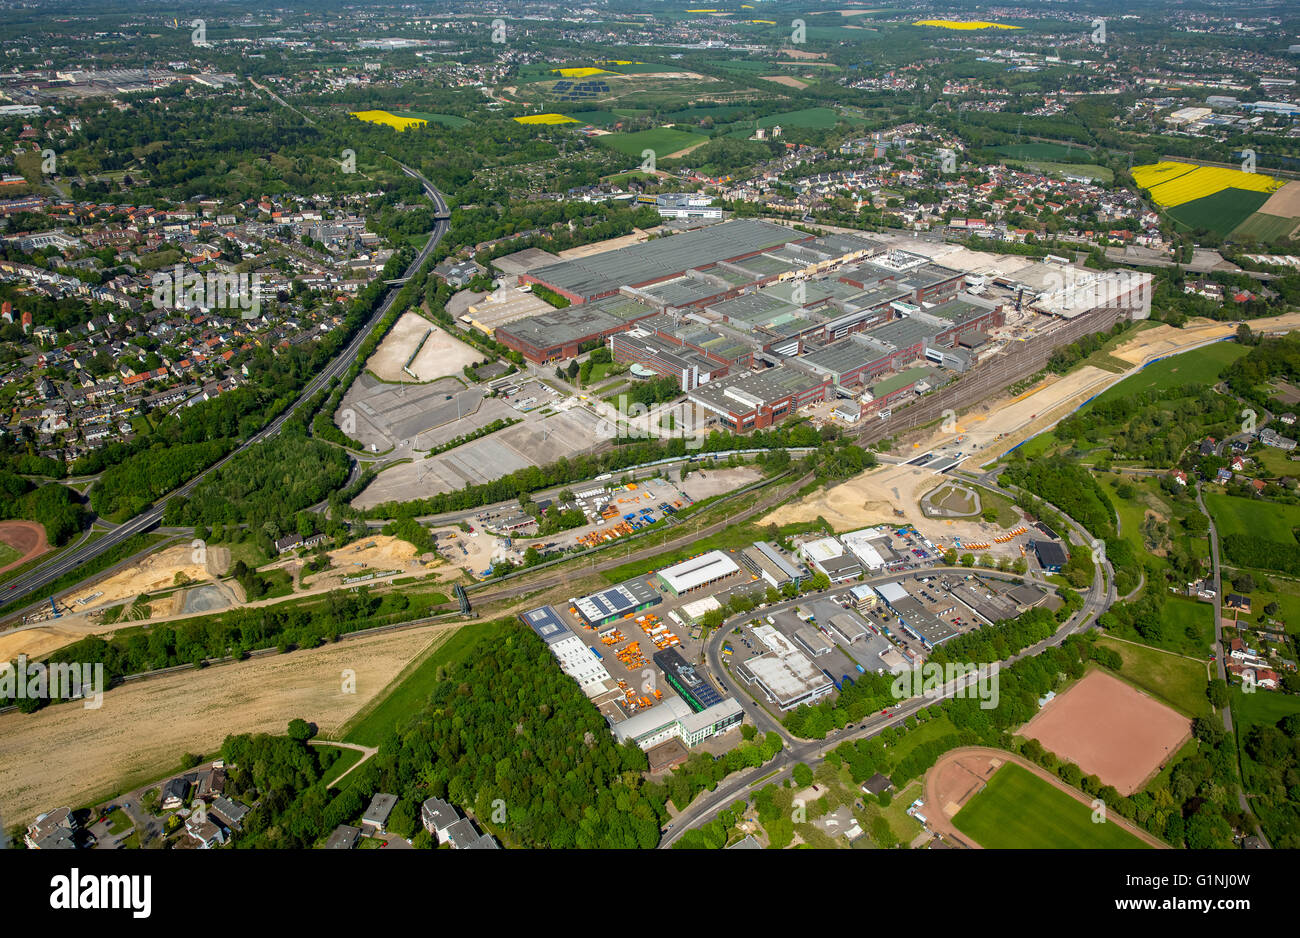 Aerial view, OPEL plant 1 Bochum, demolition of the former car factory, Bochum, Ruhr area, North Rhine-Westphalia, - Stock Image